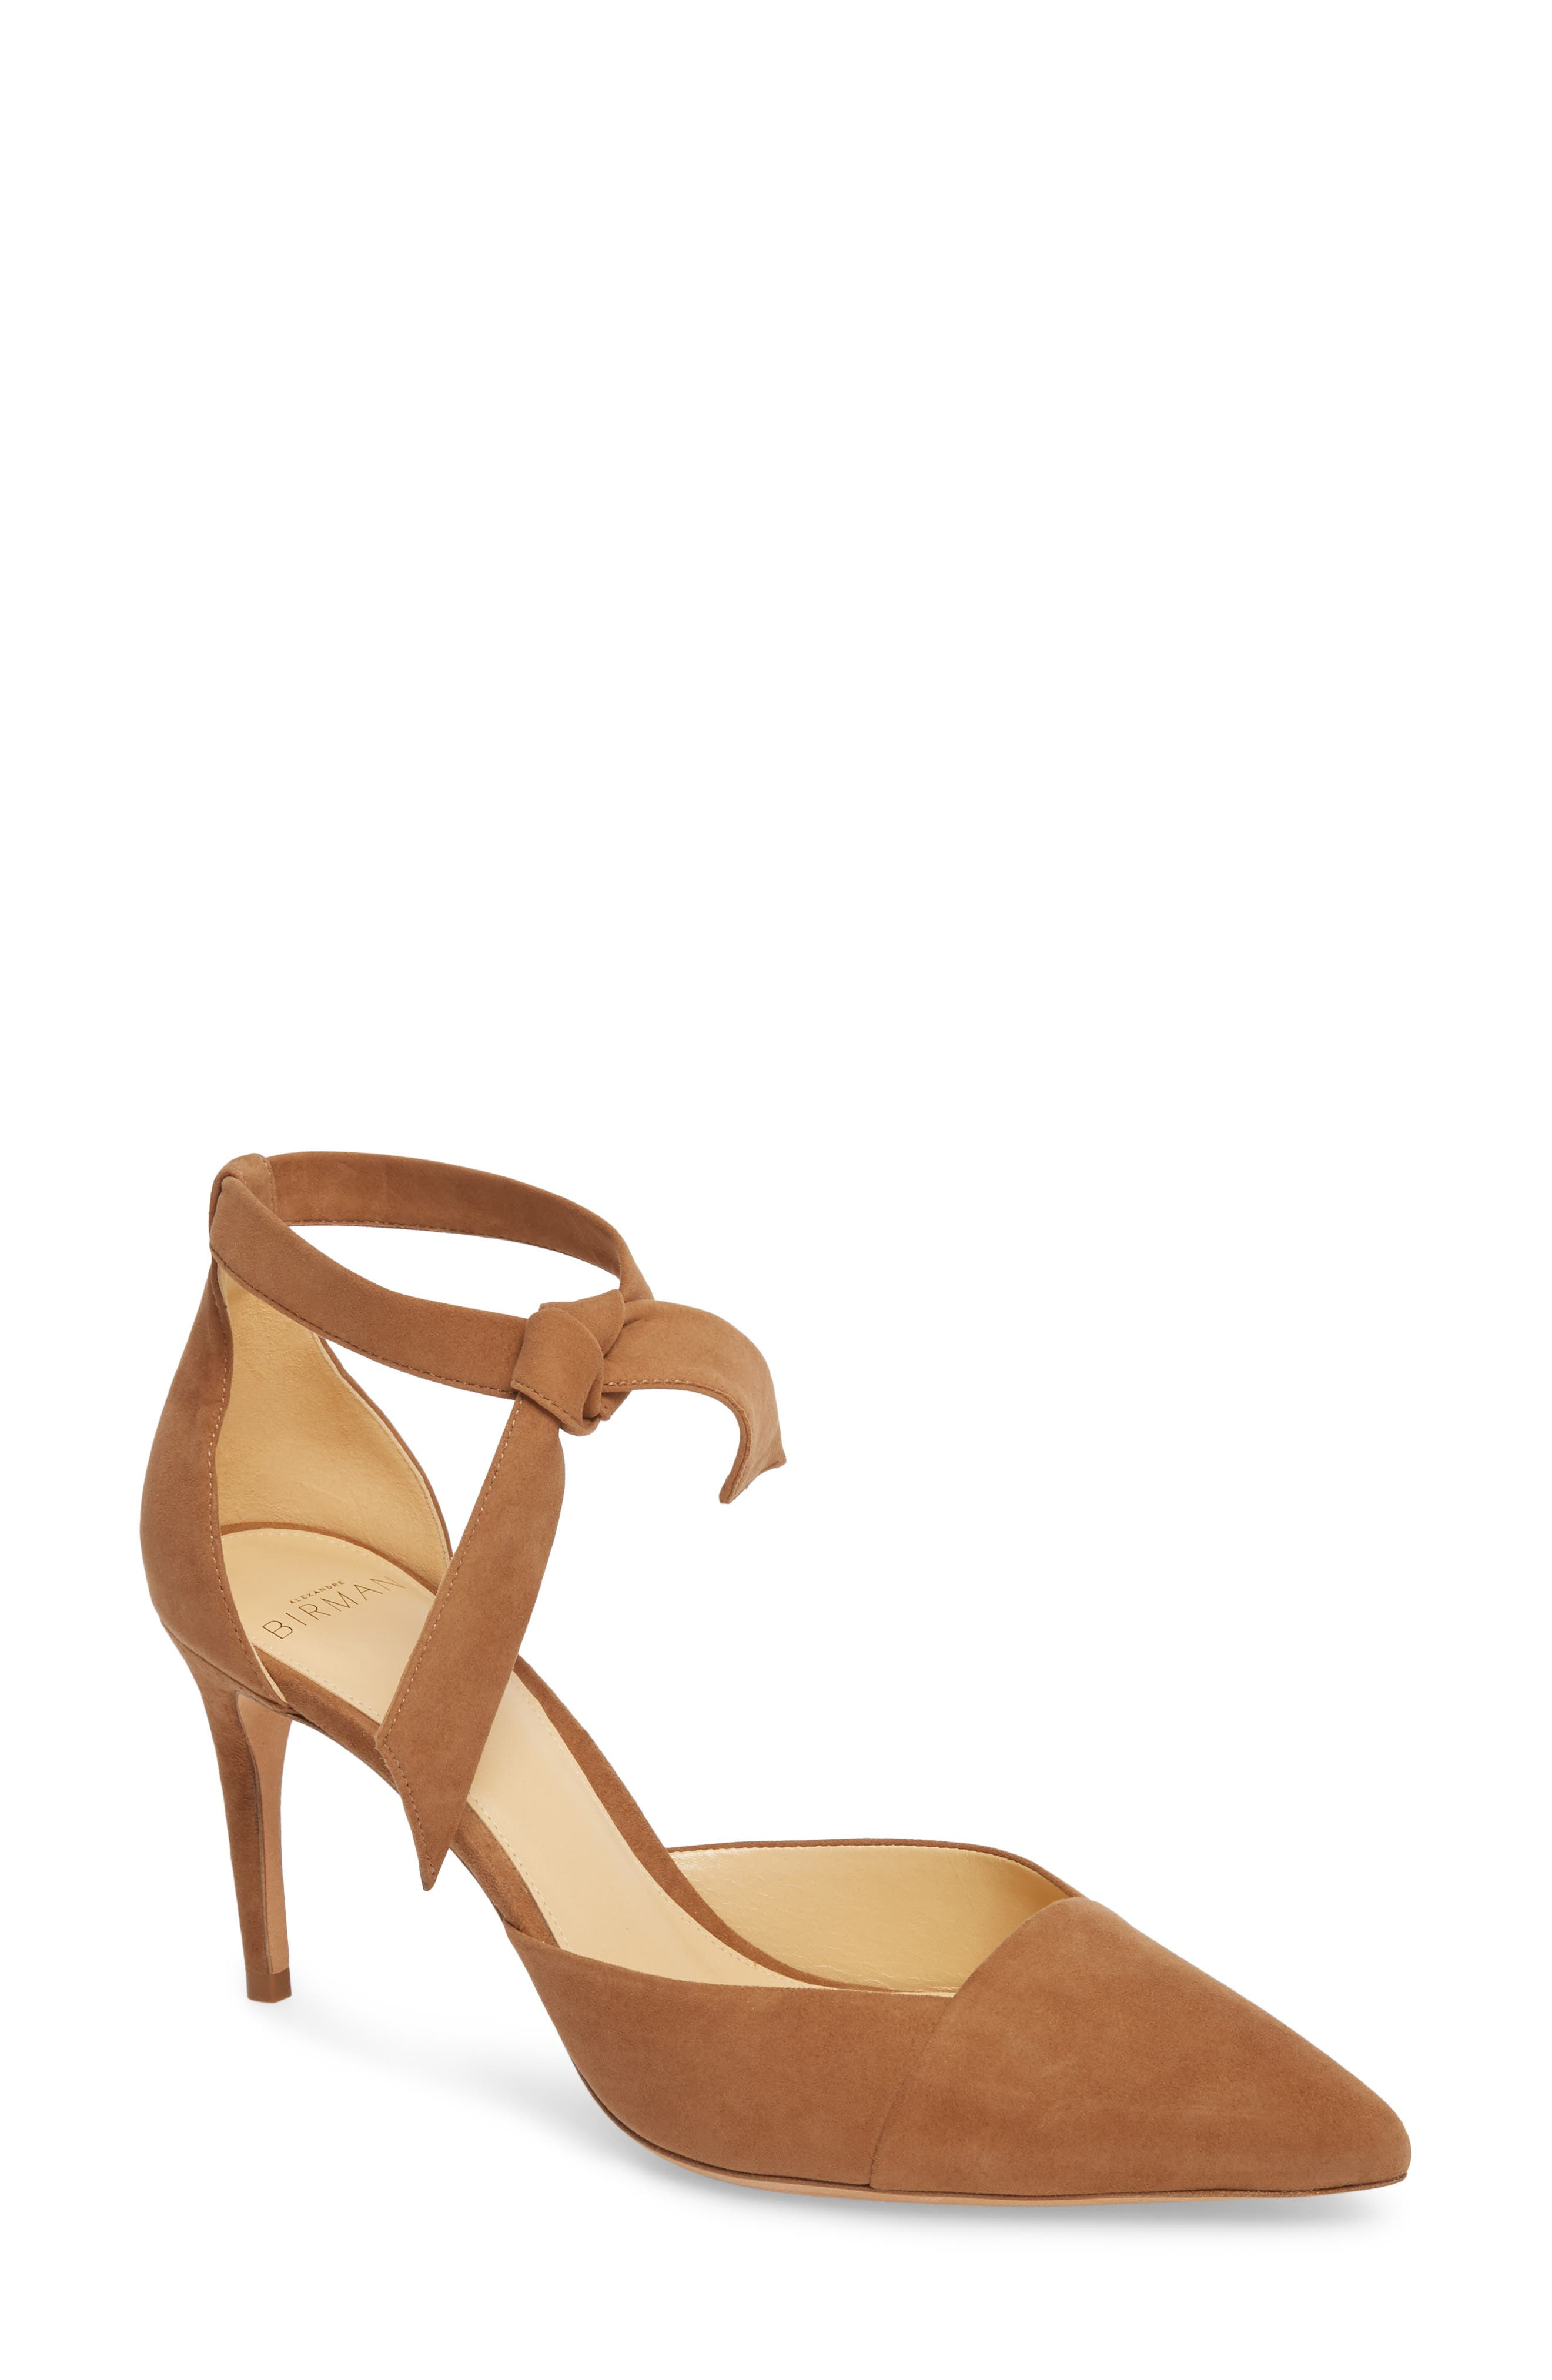 Azalea Tie Strap Pump, Main, color, LIGHT BEIGE